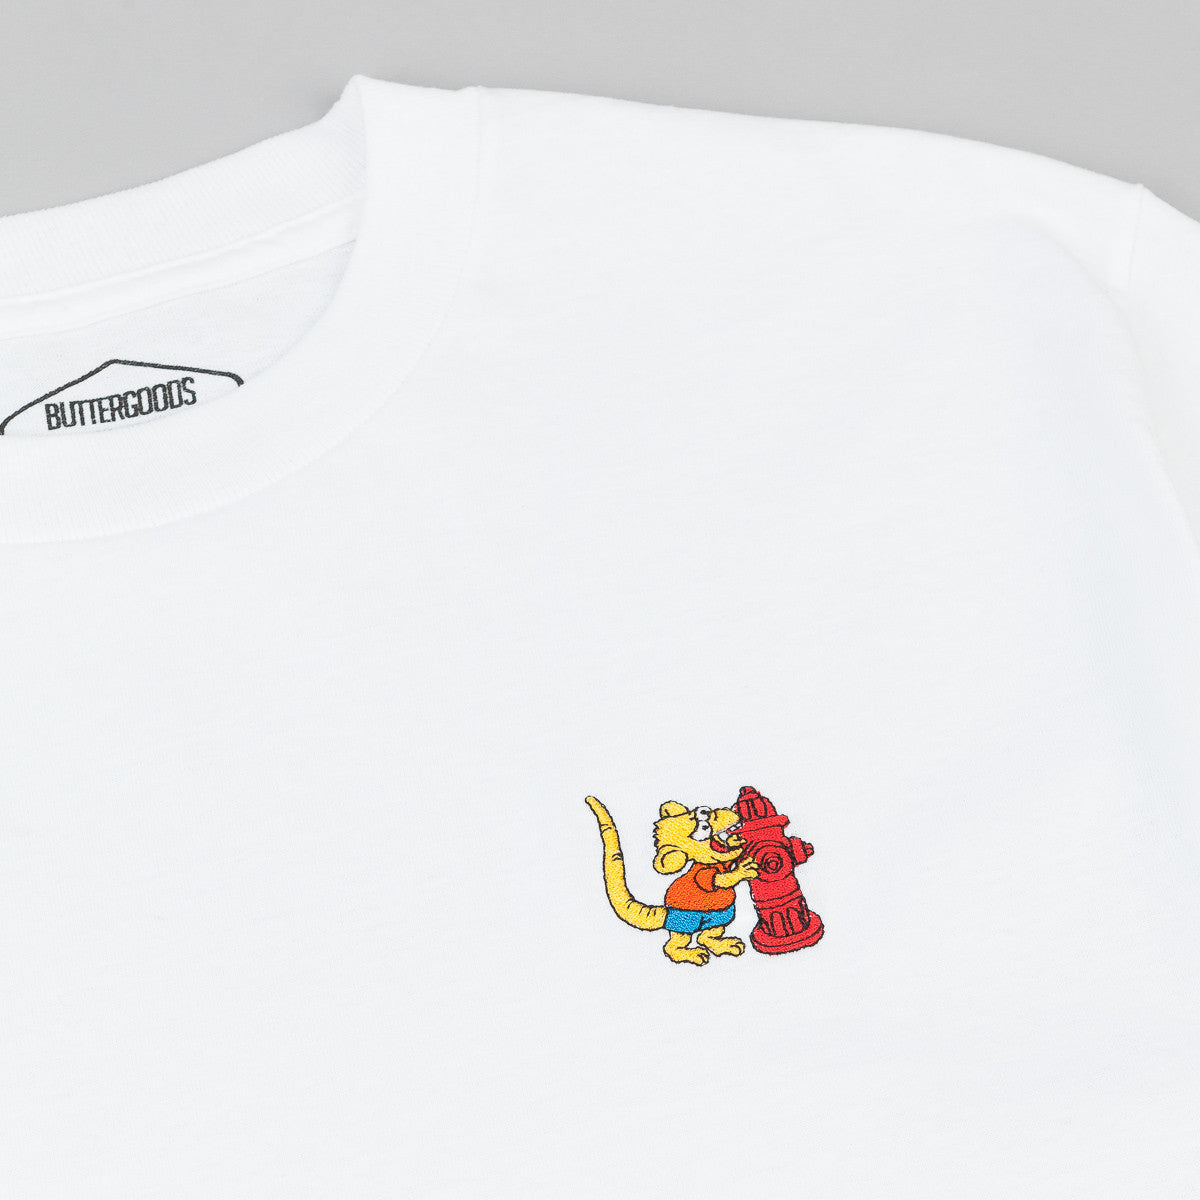 Butter Goods Rat Boy T-Shirt - White